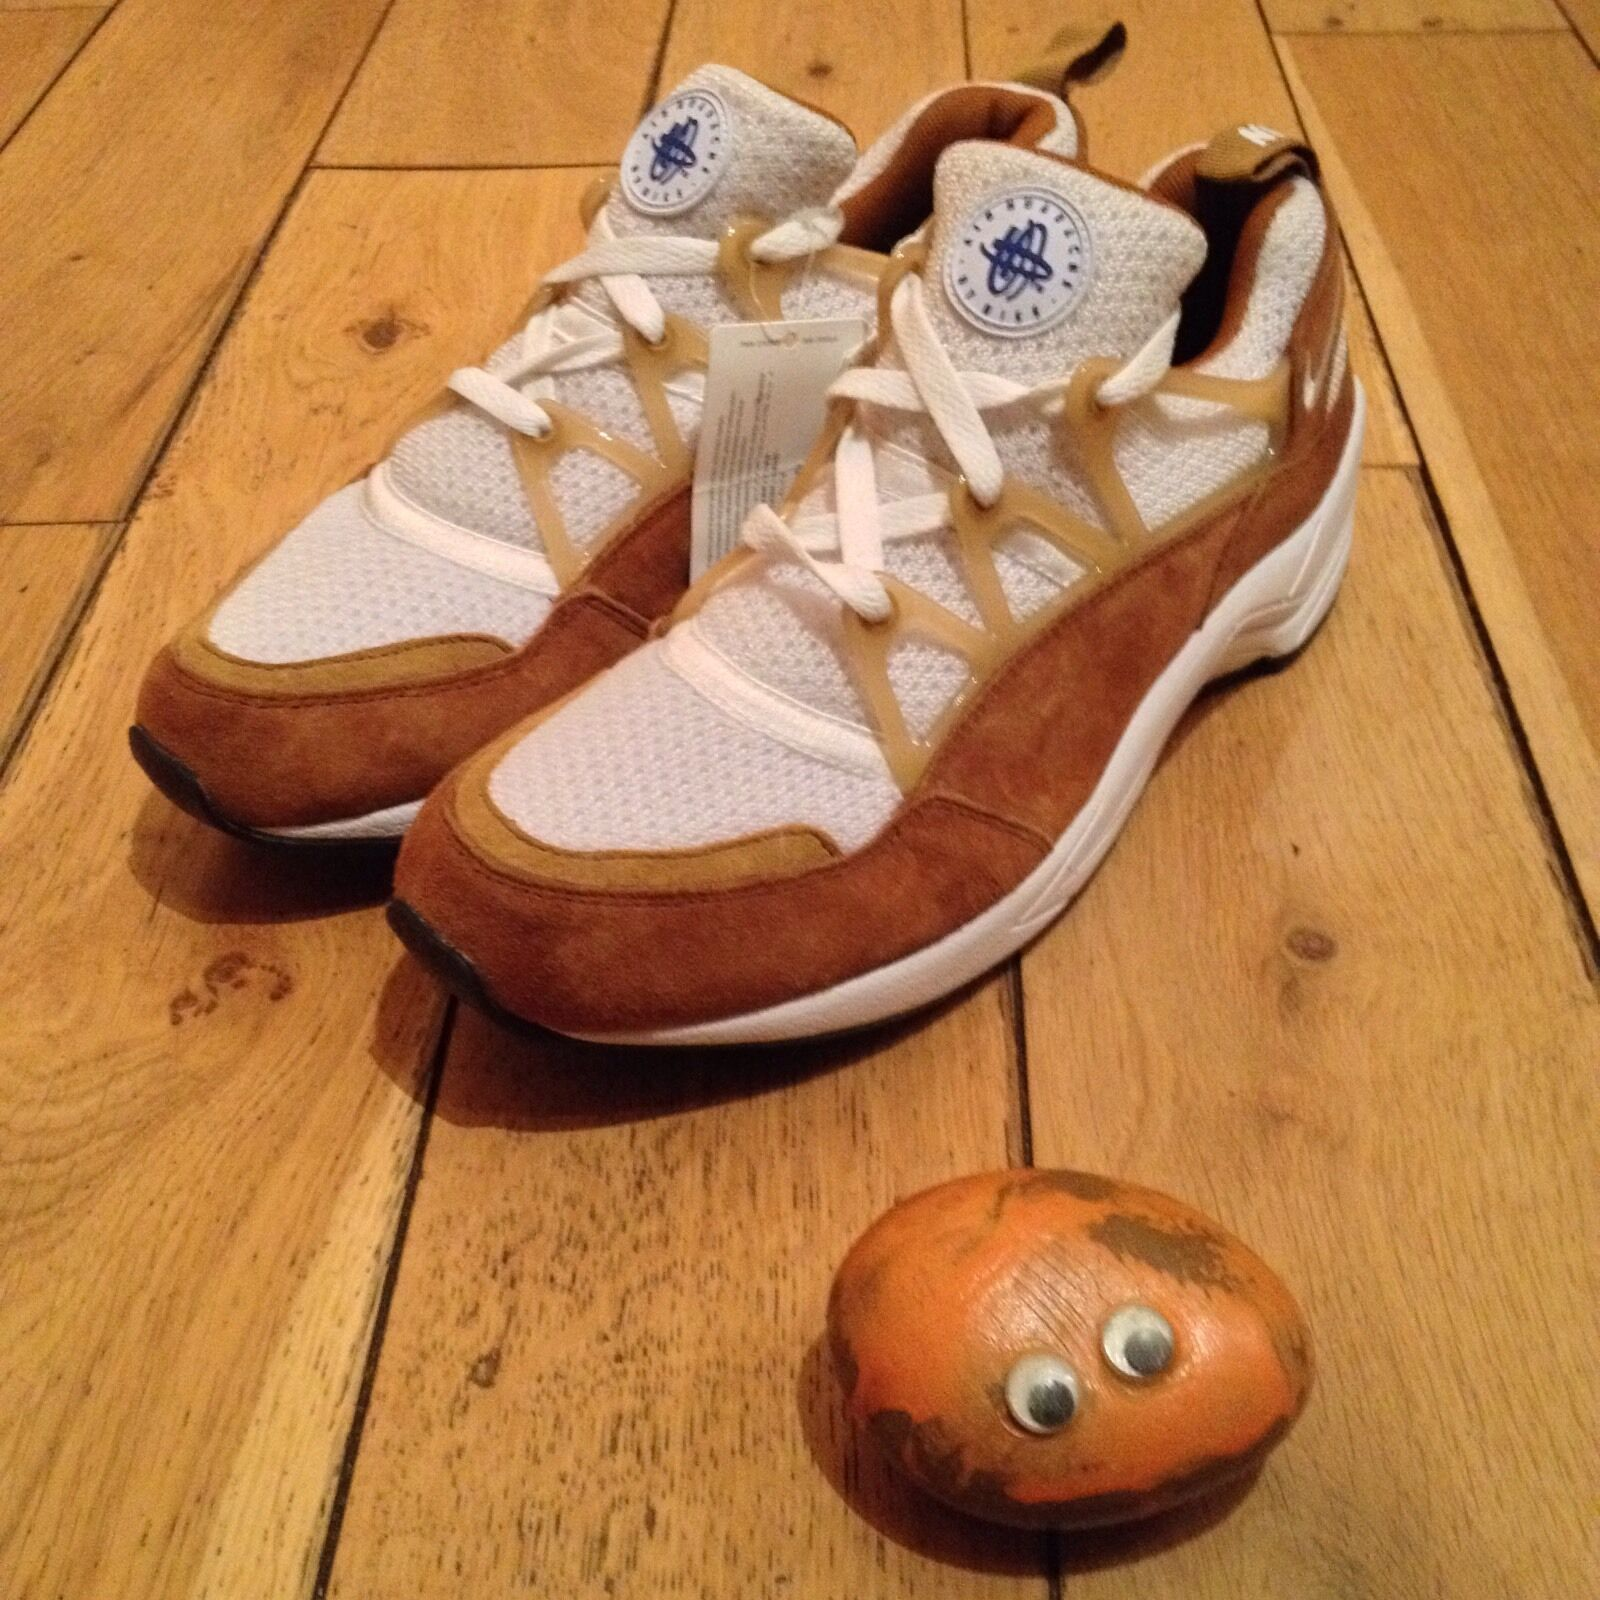 Nike Air Huarache Light Dark Curry Weiß Wheat 2015 2015 2015 Sample UK8 US9 EU42.5 JP27 aa0806